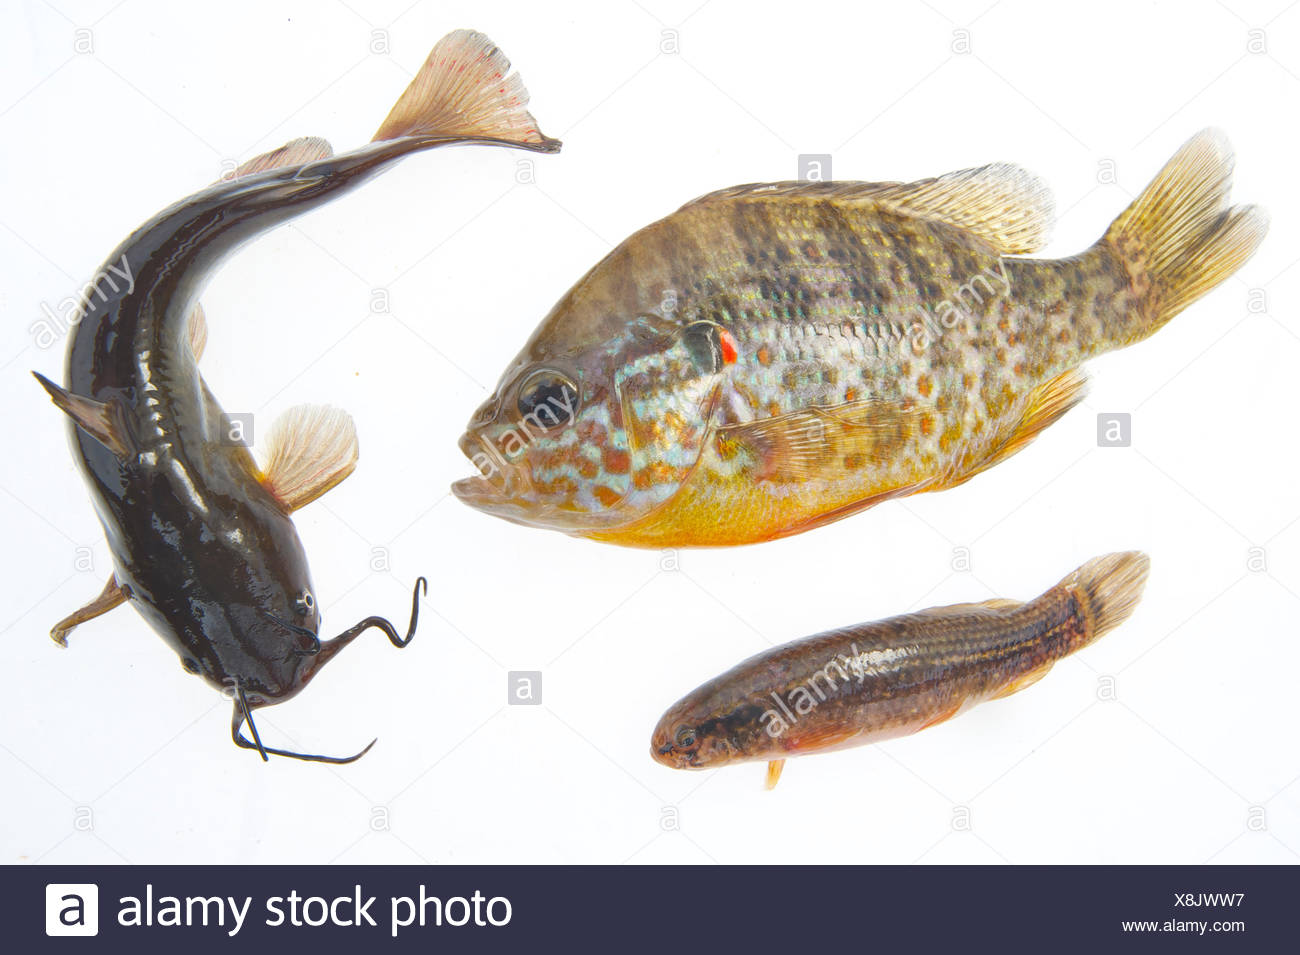 Composite image of American fish species introduced to Europe: Pumpkinseed sunfish (Lepomis gibbosus, left), Brown bullhead (Ameiurus nebulosus, right) and Eastern mudminnow (Umbra pygmaea, under), photographed in controlled conditions, Belgium. - Stock Image